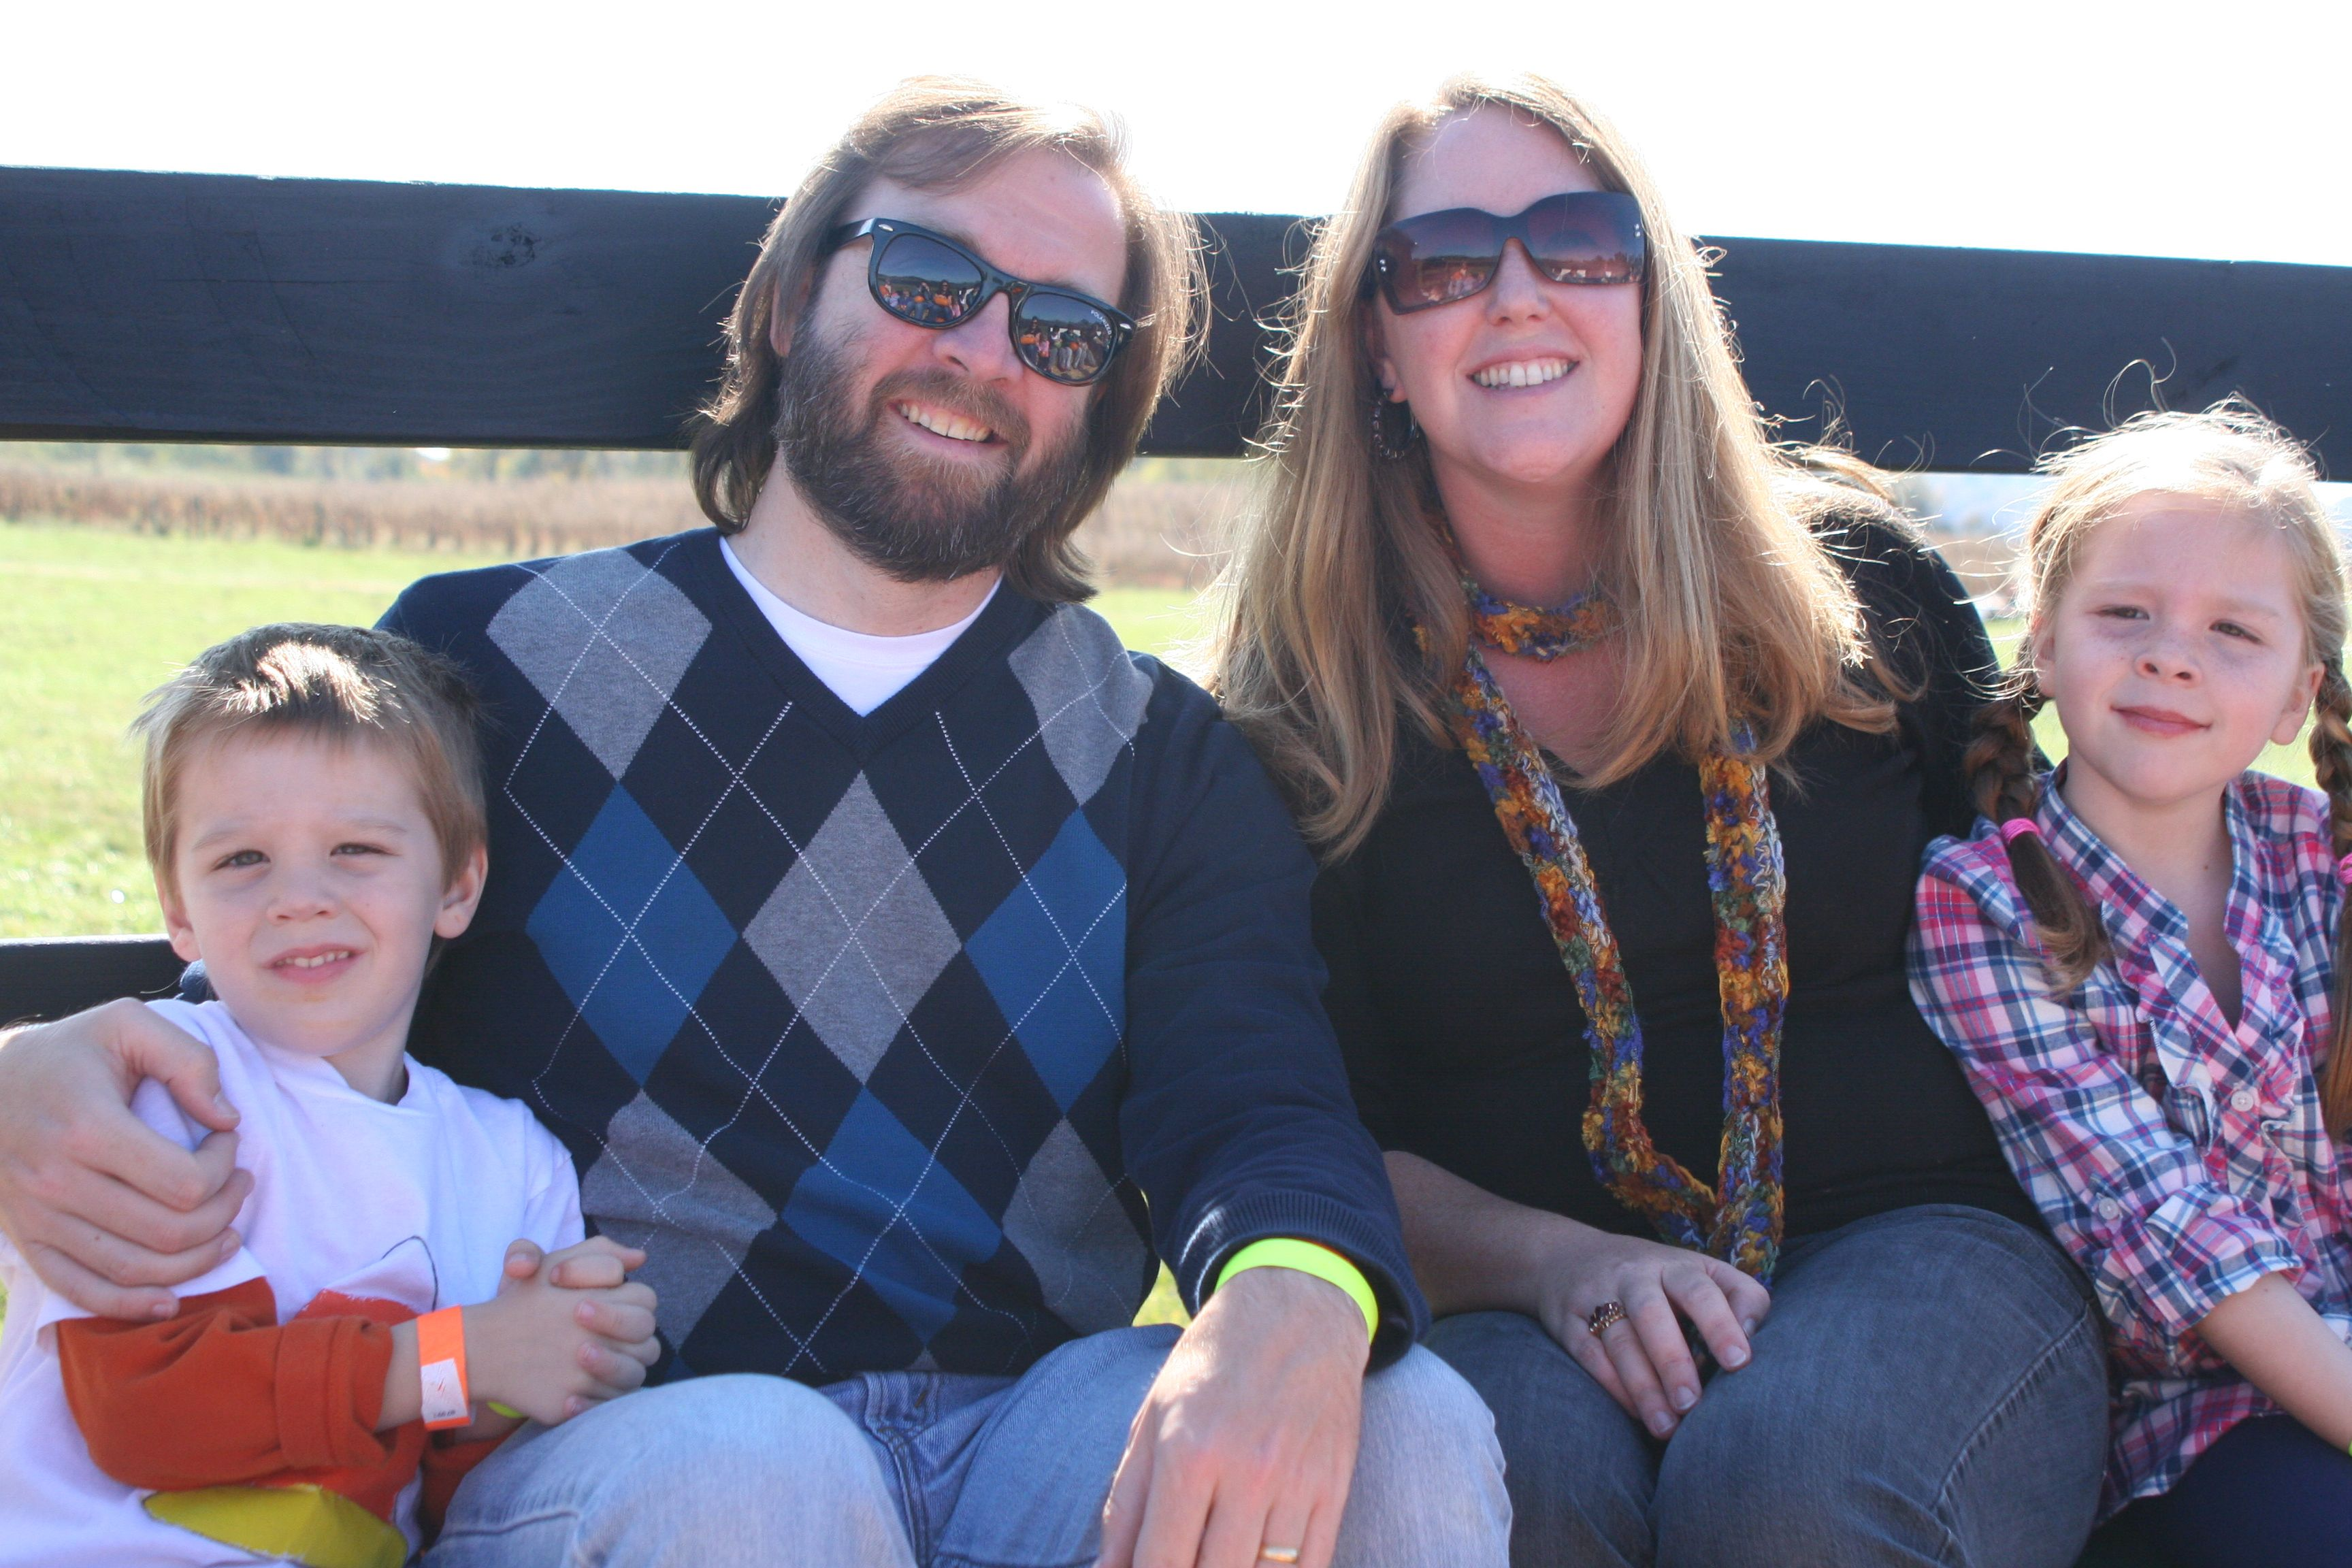 Family Hay Ride at a local pumpkin patch Family fun